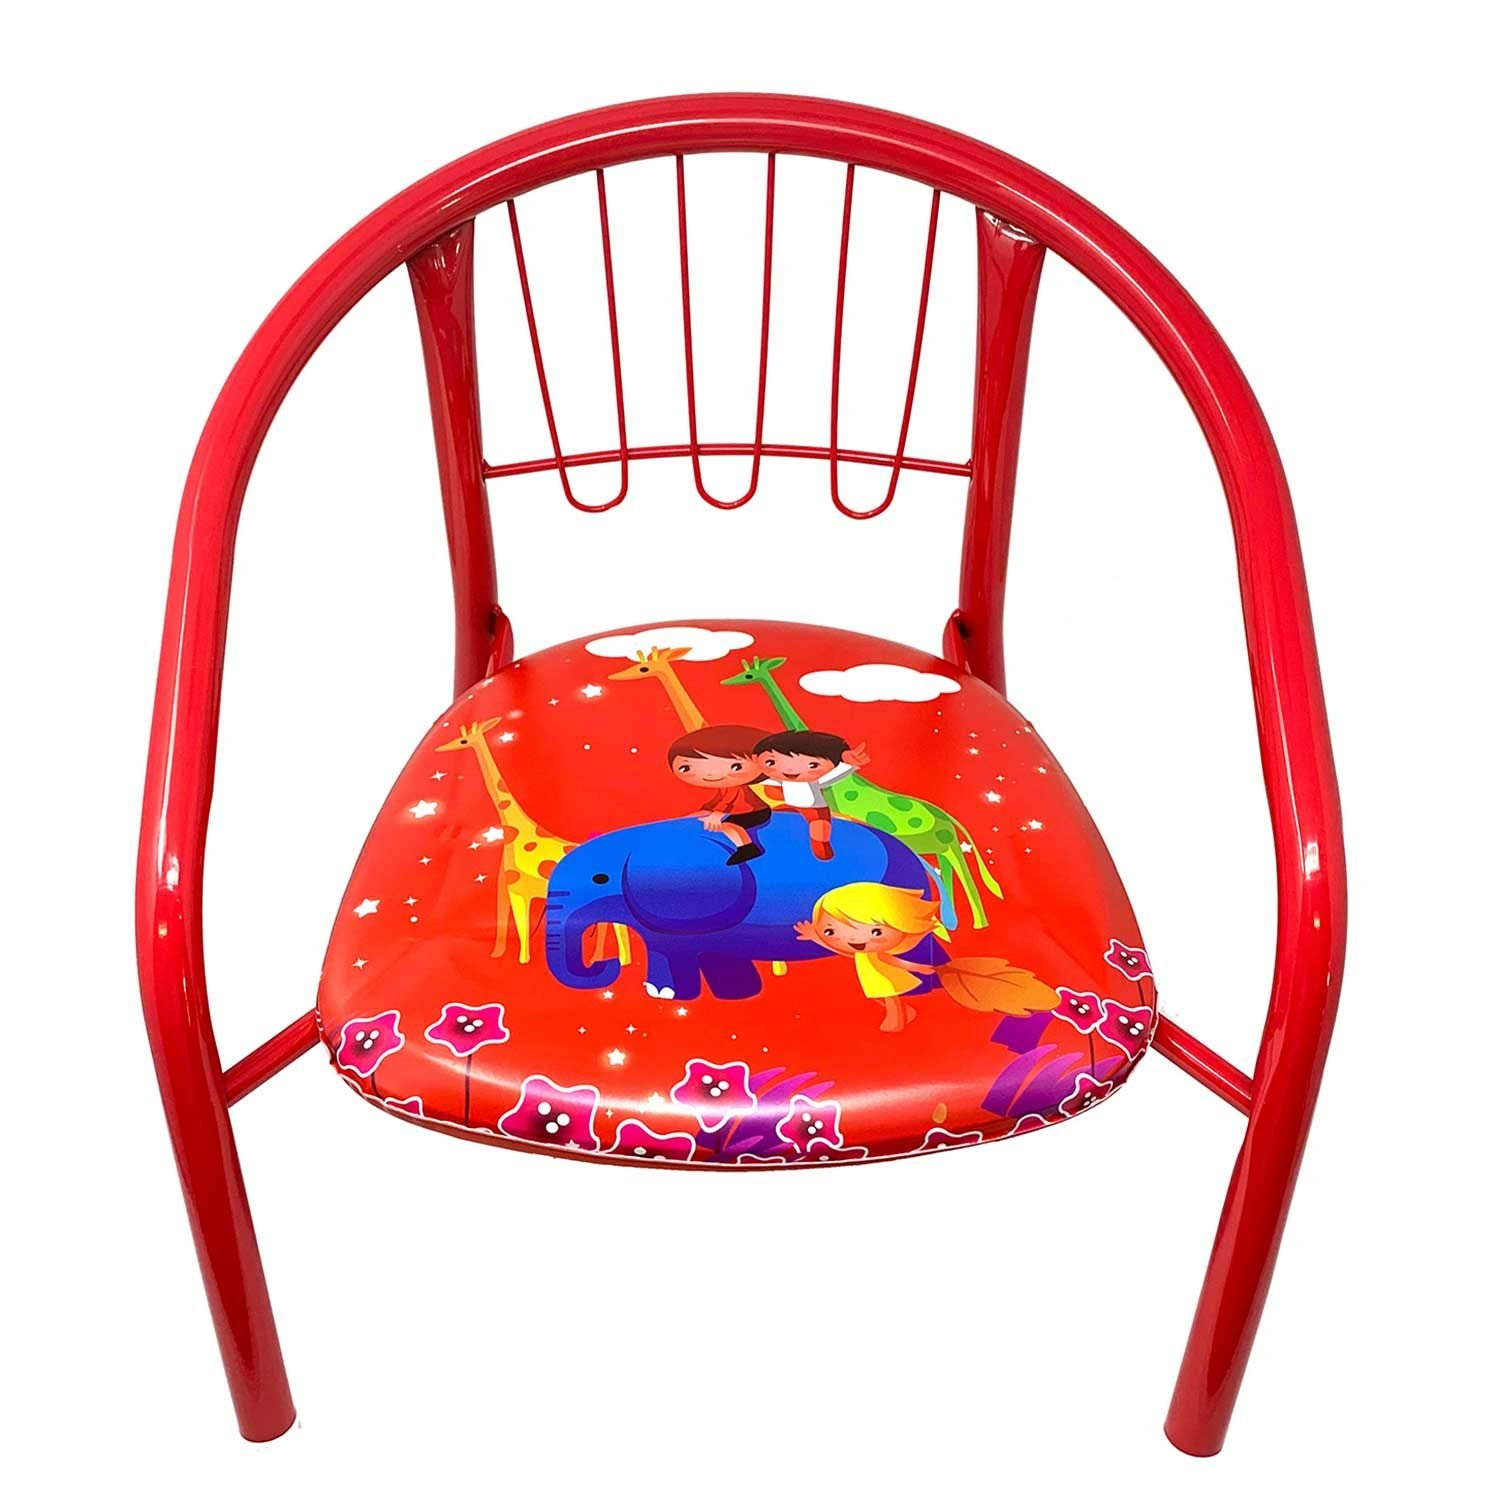 Toddler Soft Chairs Kids Toddler Metal Chairs With Soft Cushion Bottom Squeaky Fun Sound Indoor Outdoor Chair For Boys Girls Home Garden Playhouse Preschool Birthday